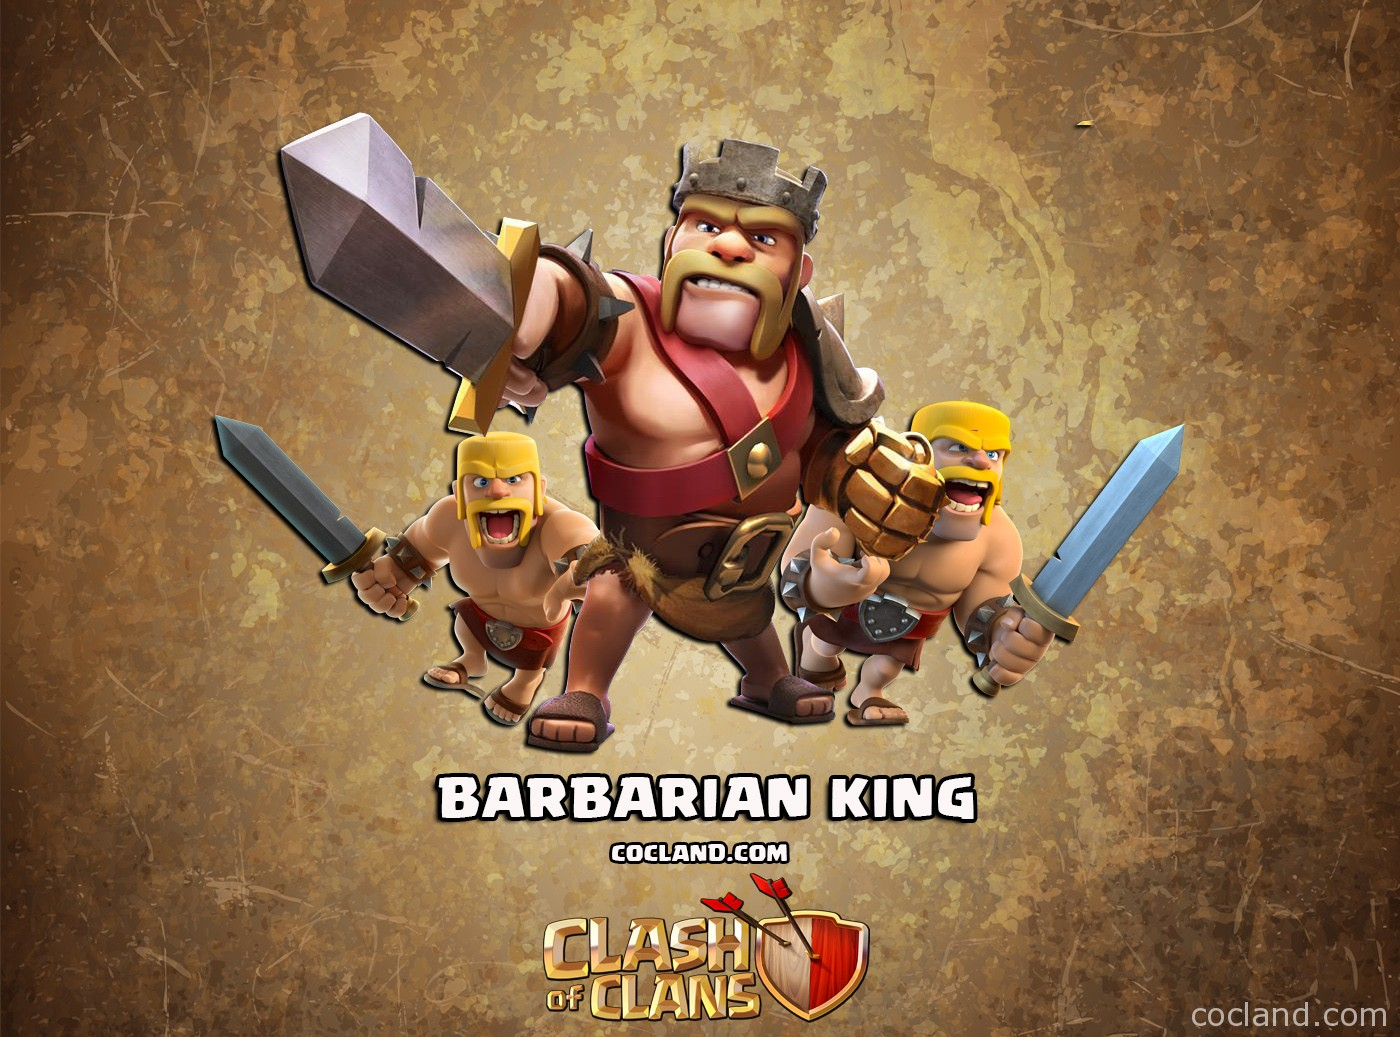 46 ] Barbarian King Wallpaper On WallpaperSafari